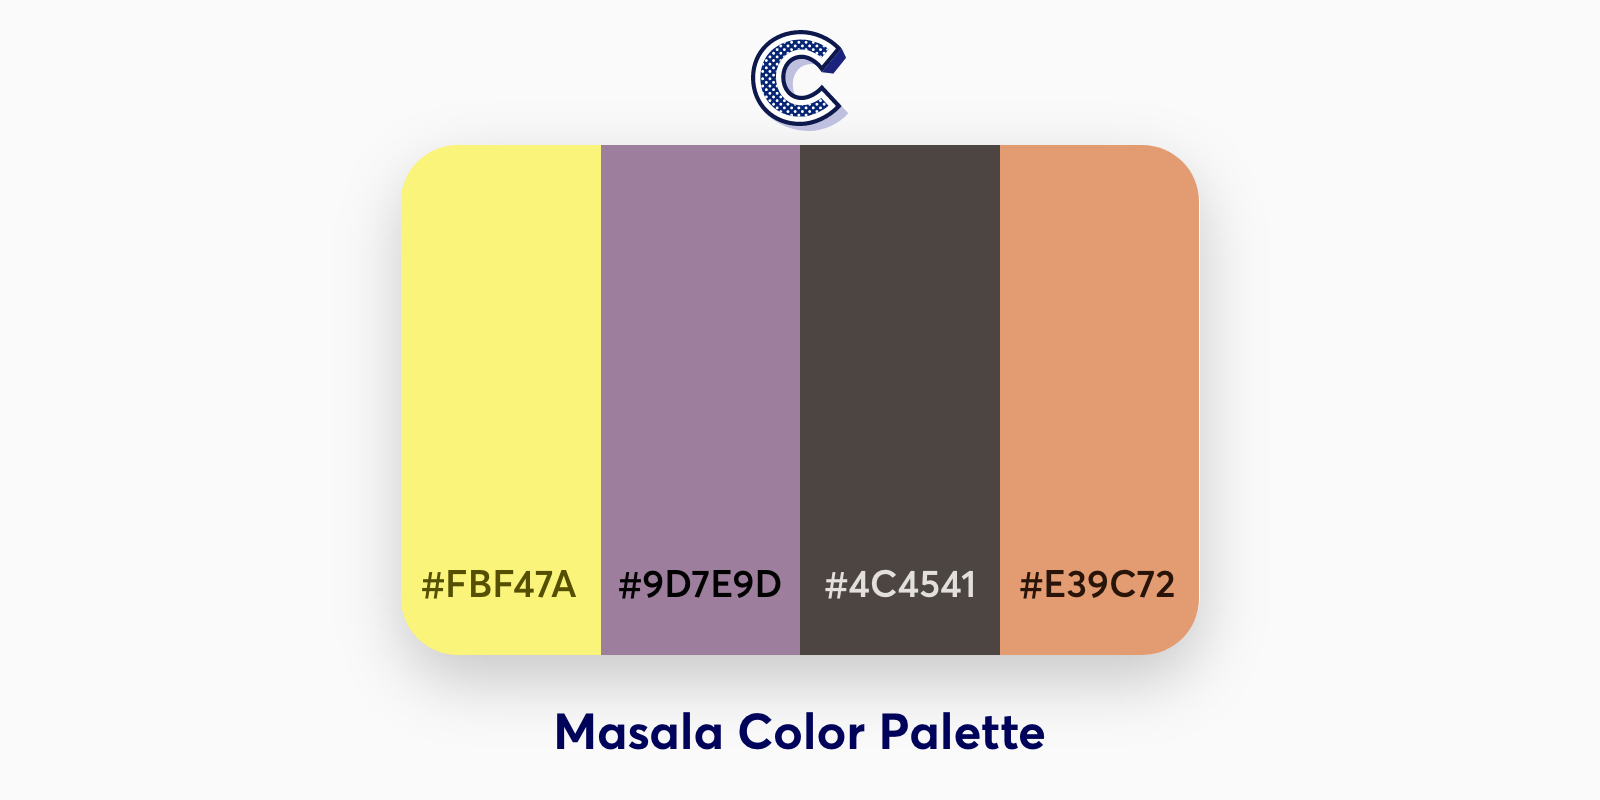 the featured image of masala color palette